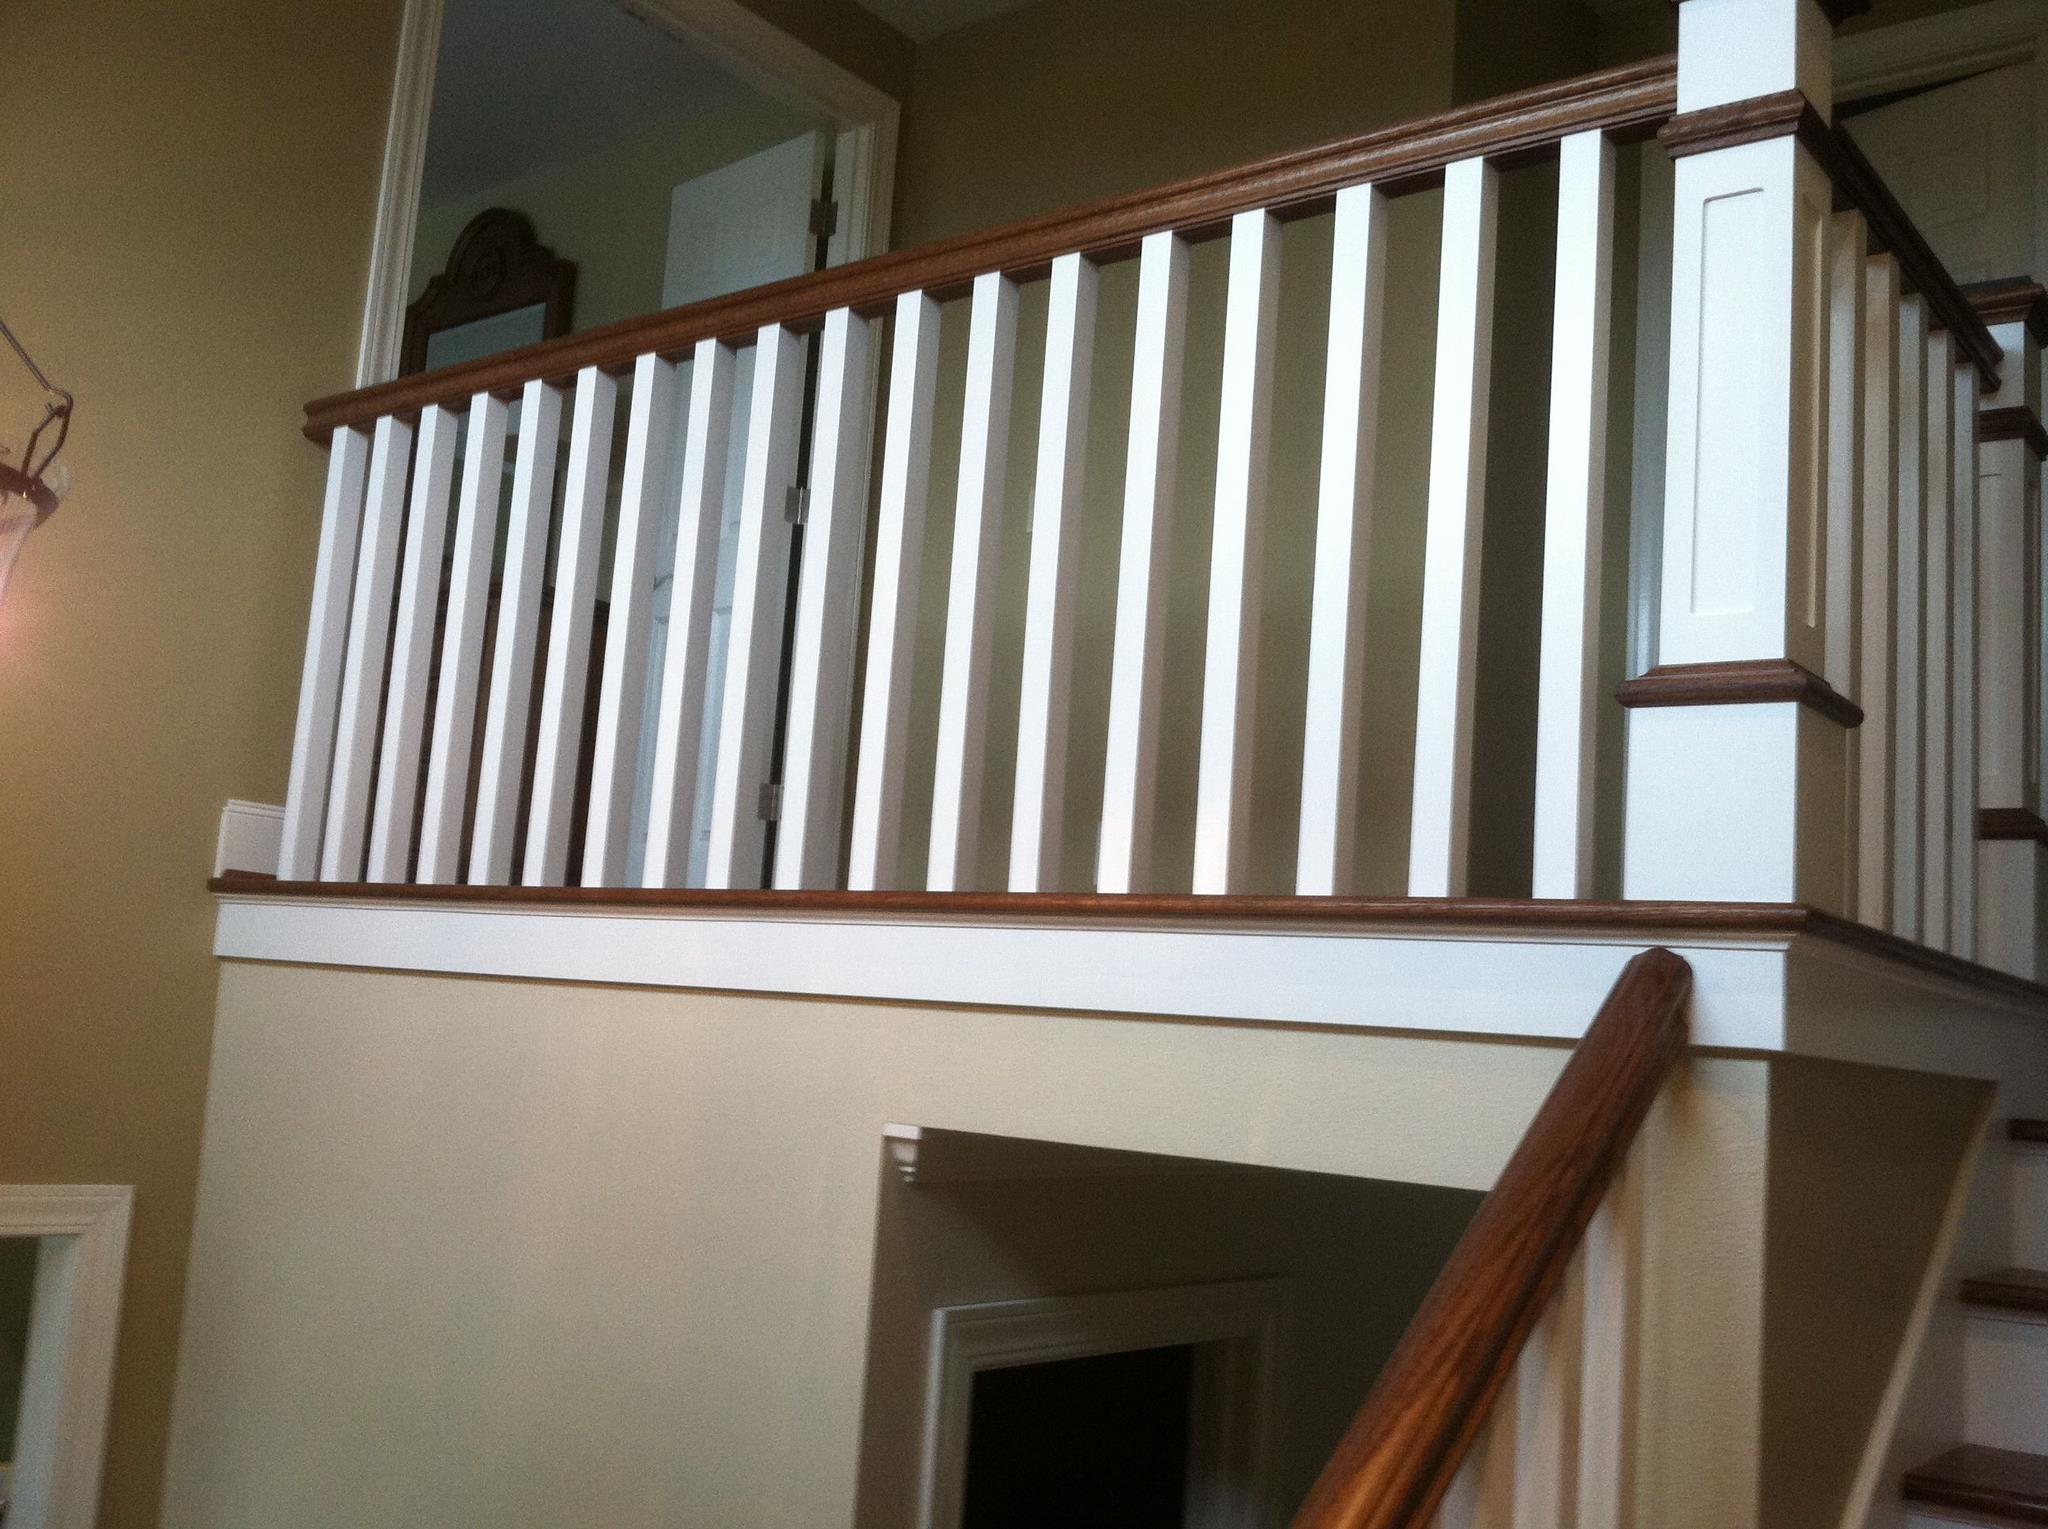 Stairs case and Banisters